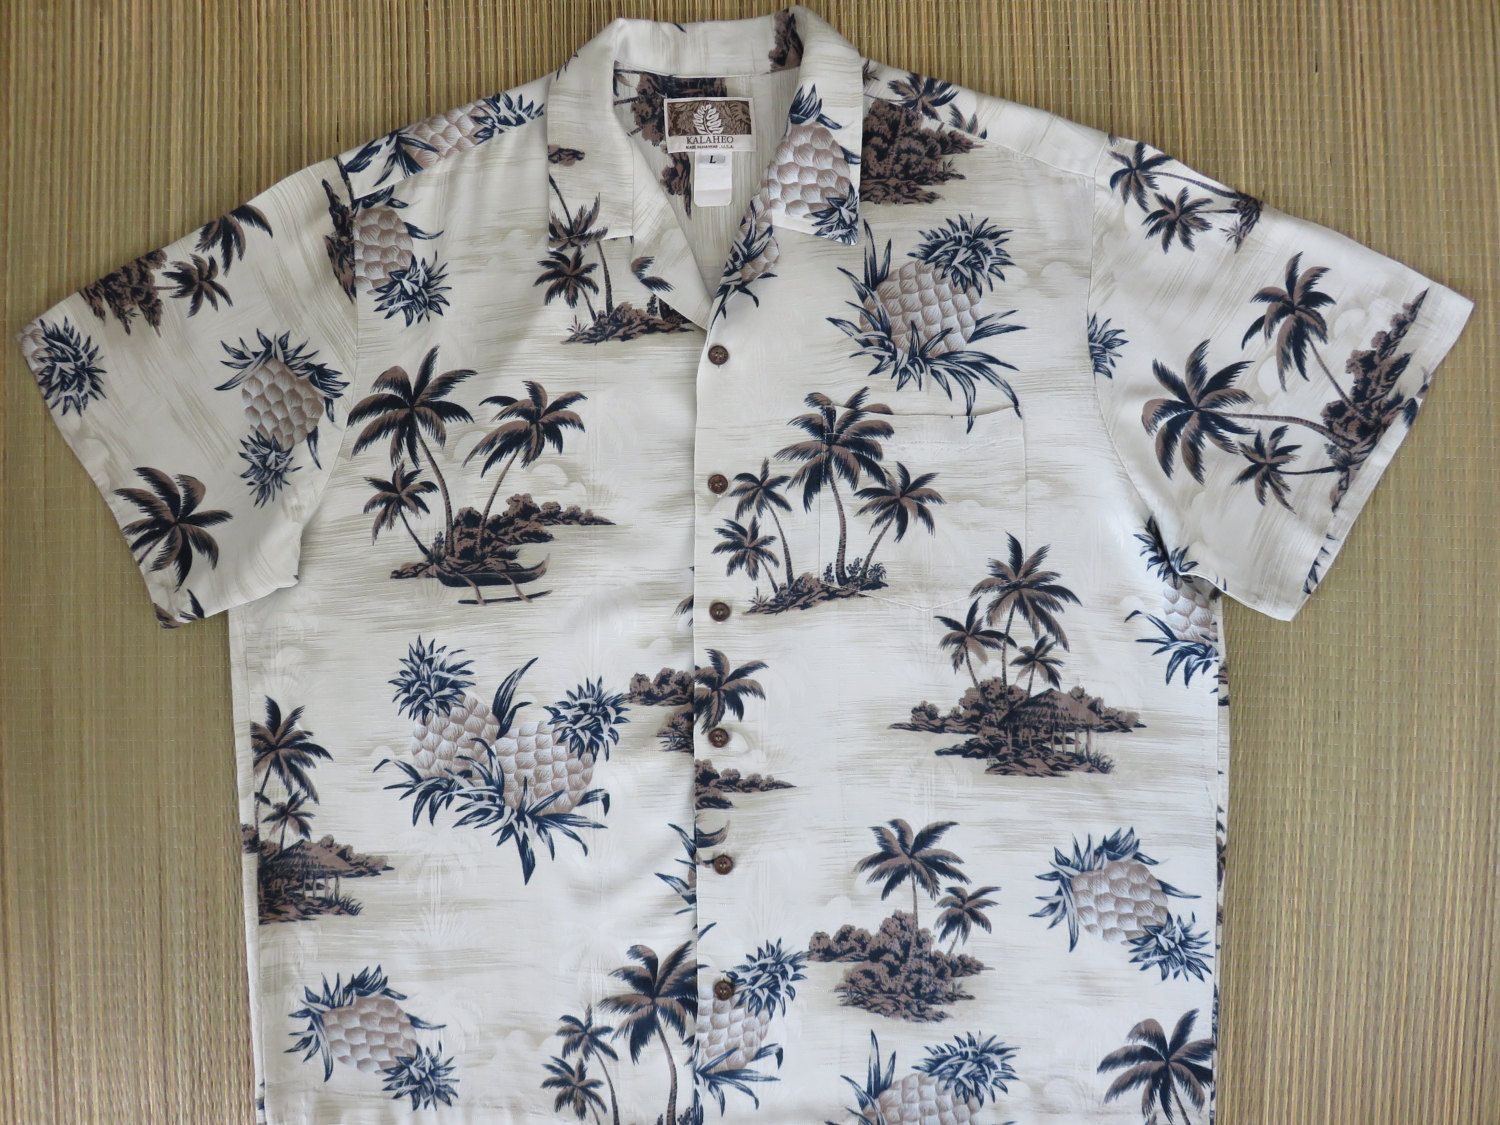 ddfbcd45 Hawaiian Shirt KALAHEO Vintage 100% Silk Pineapple Palm Trees Aloha Shirt  Surfer Tropical Island Mens Camp - L - Oahu Lew's Shirt Shack by ...